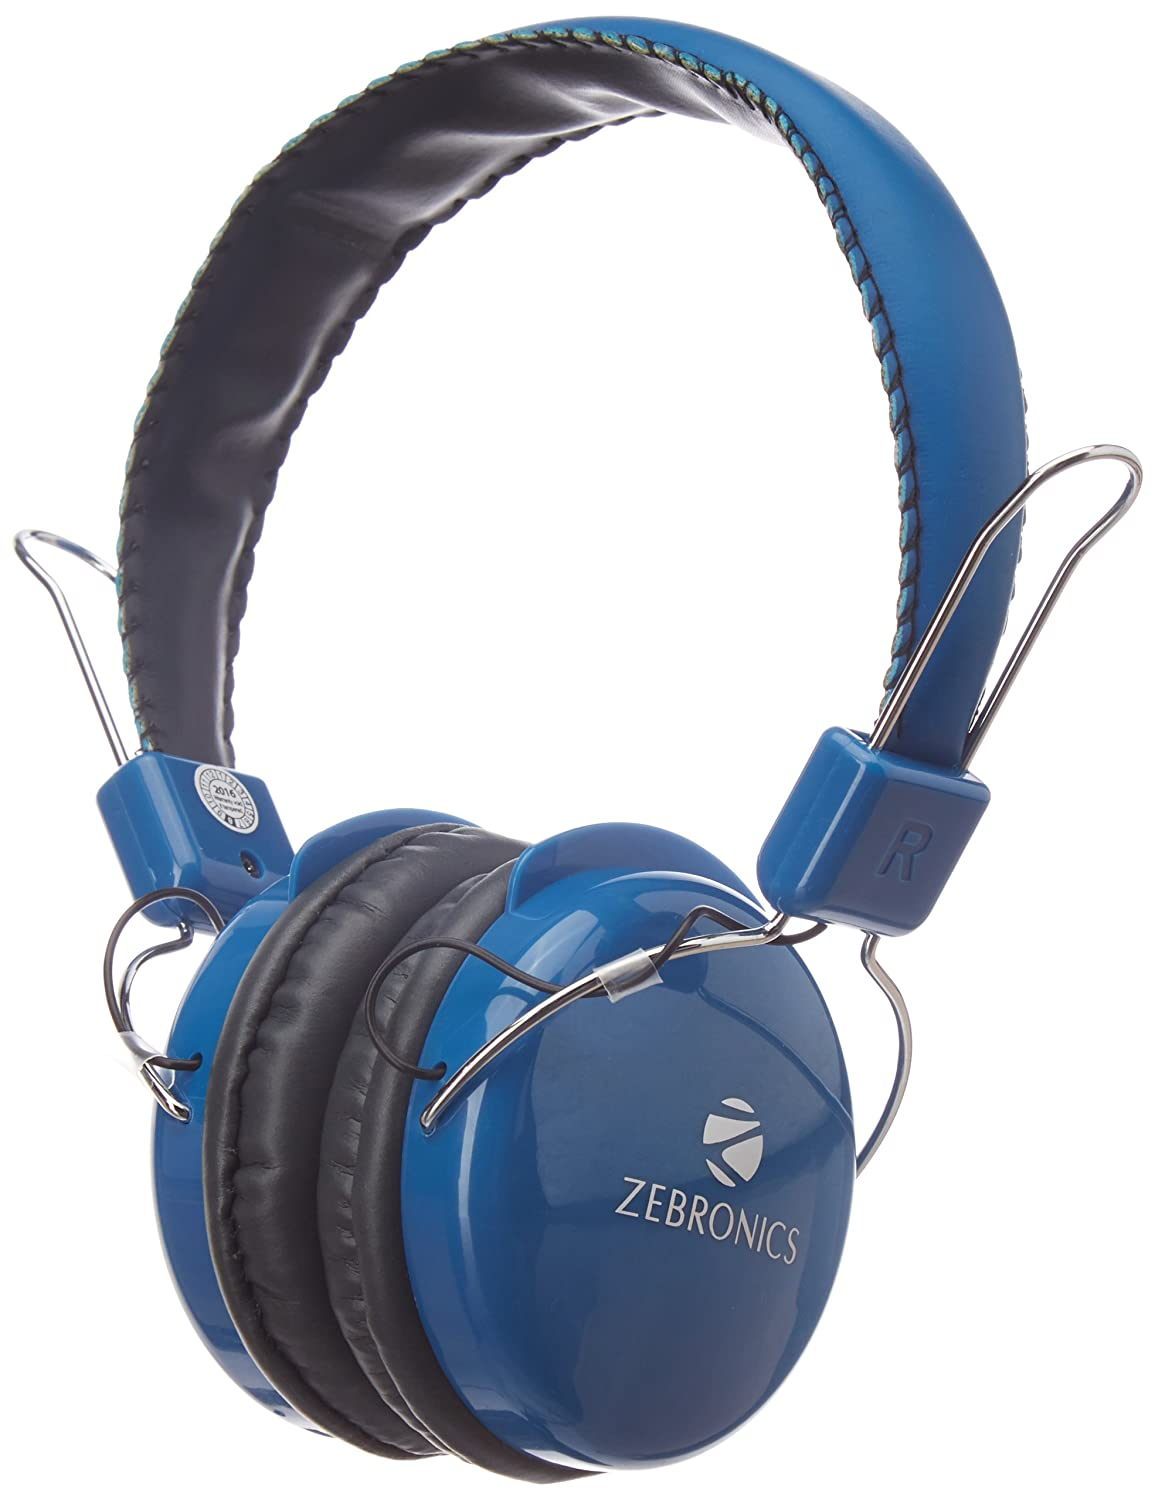 Zebronics Bluetooth Headphone Raga